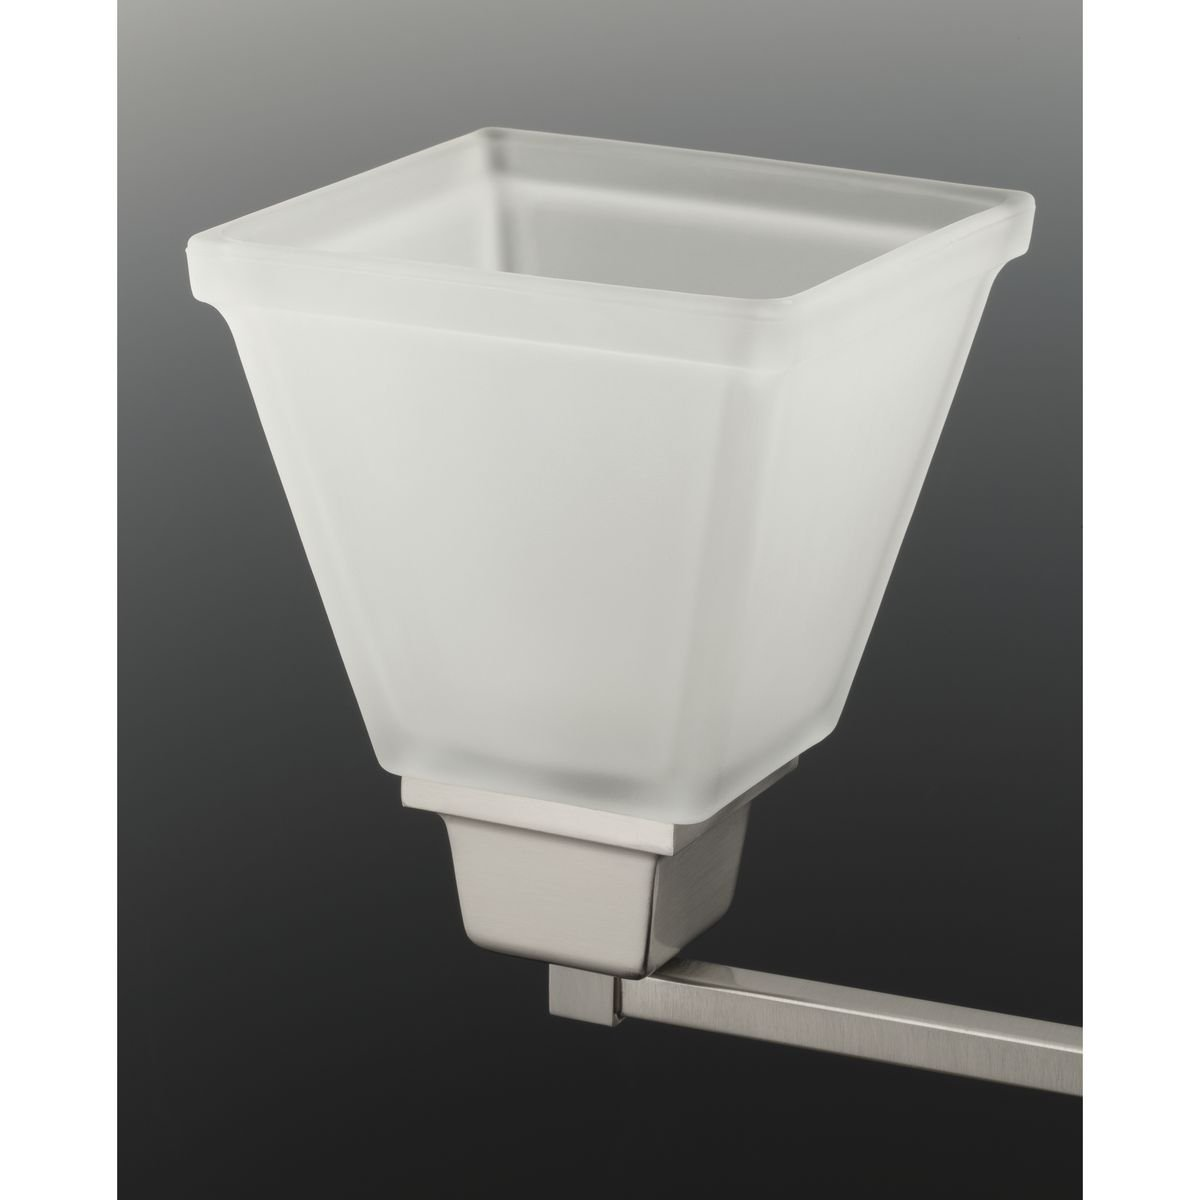 Progress Lighting P2743-09 3-Light Bath Fixture with Square Etched Glass and Can Mount Up or Down, Brushed Nickel